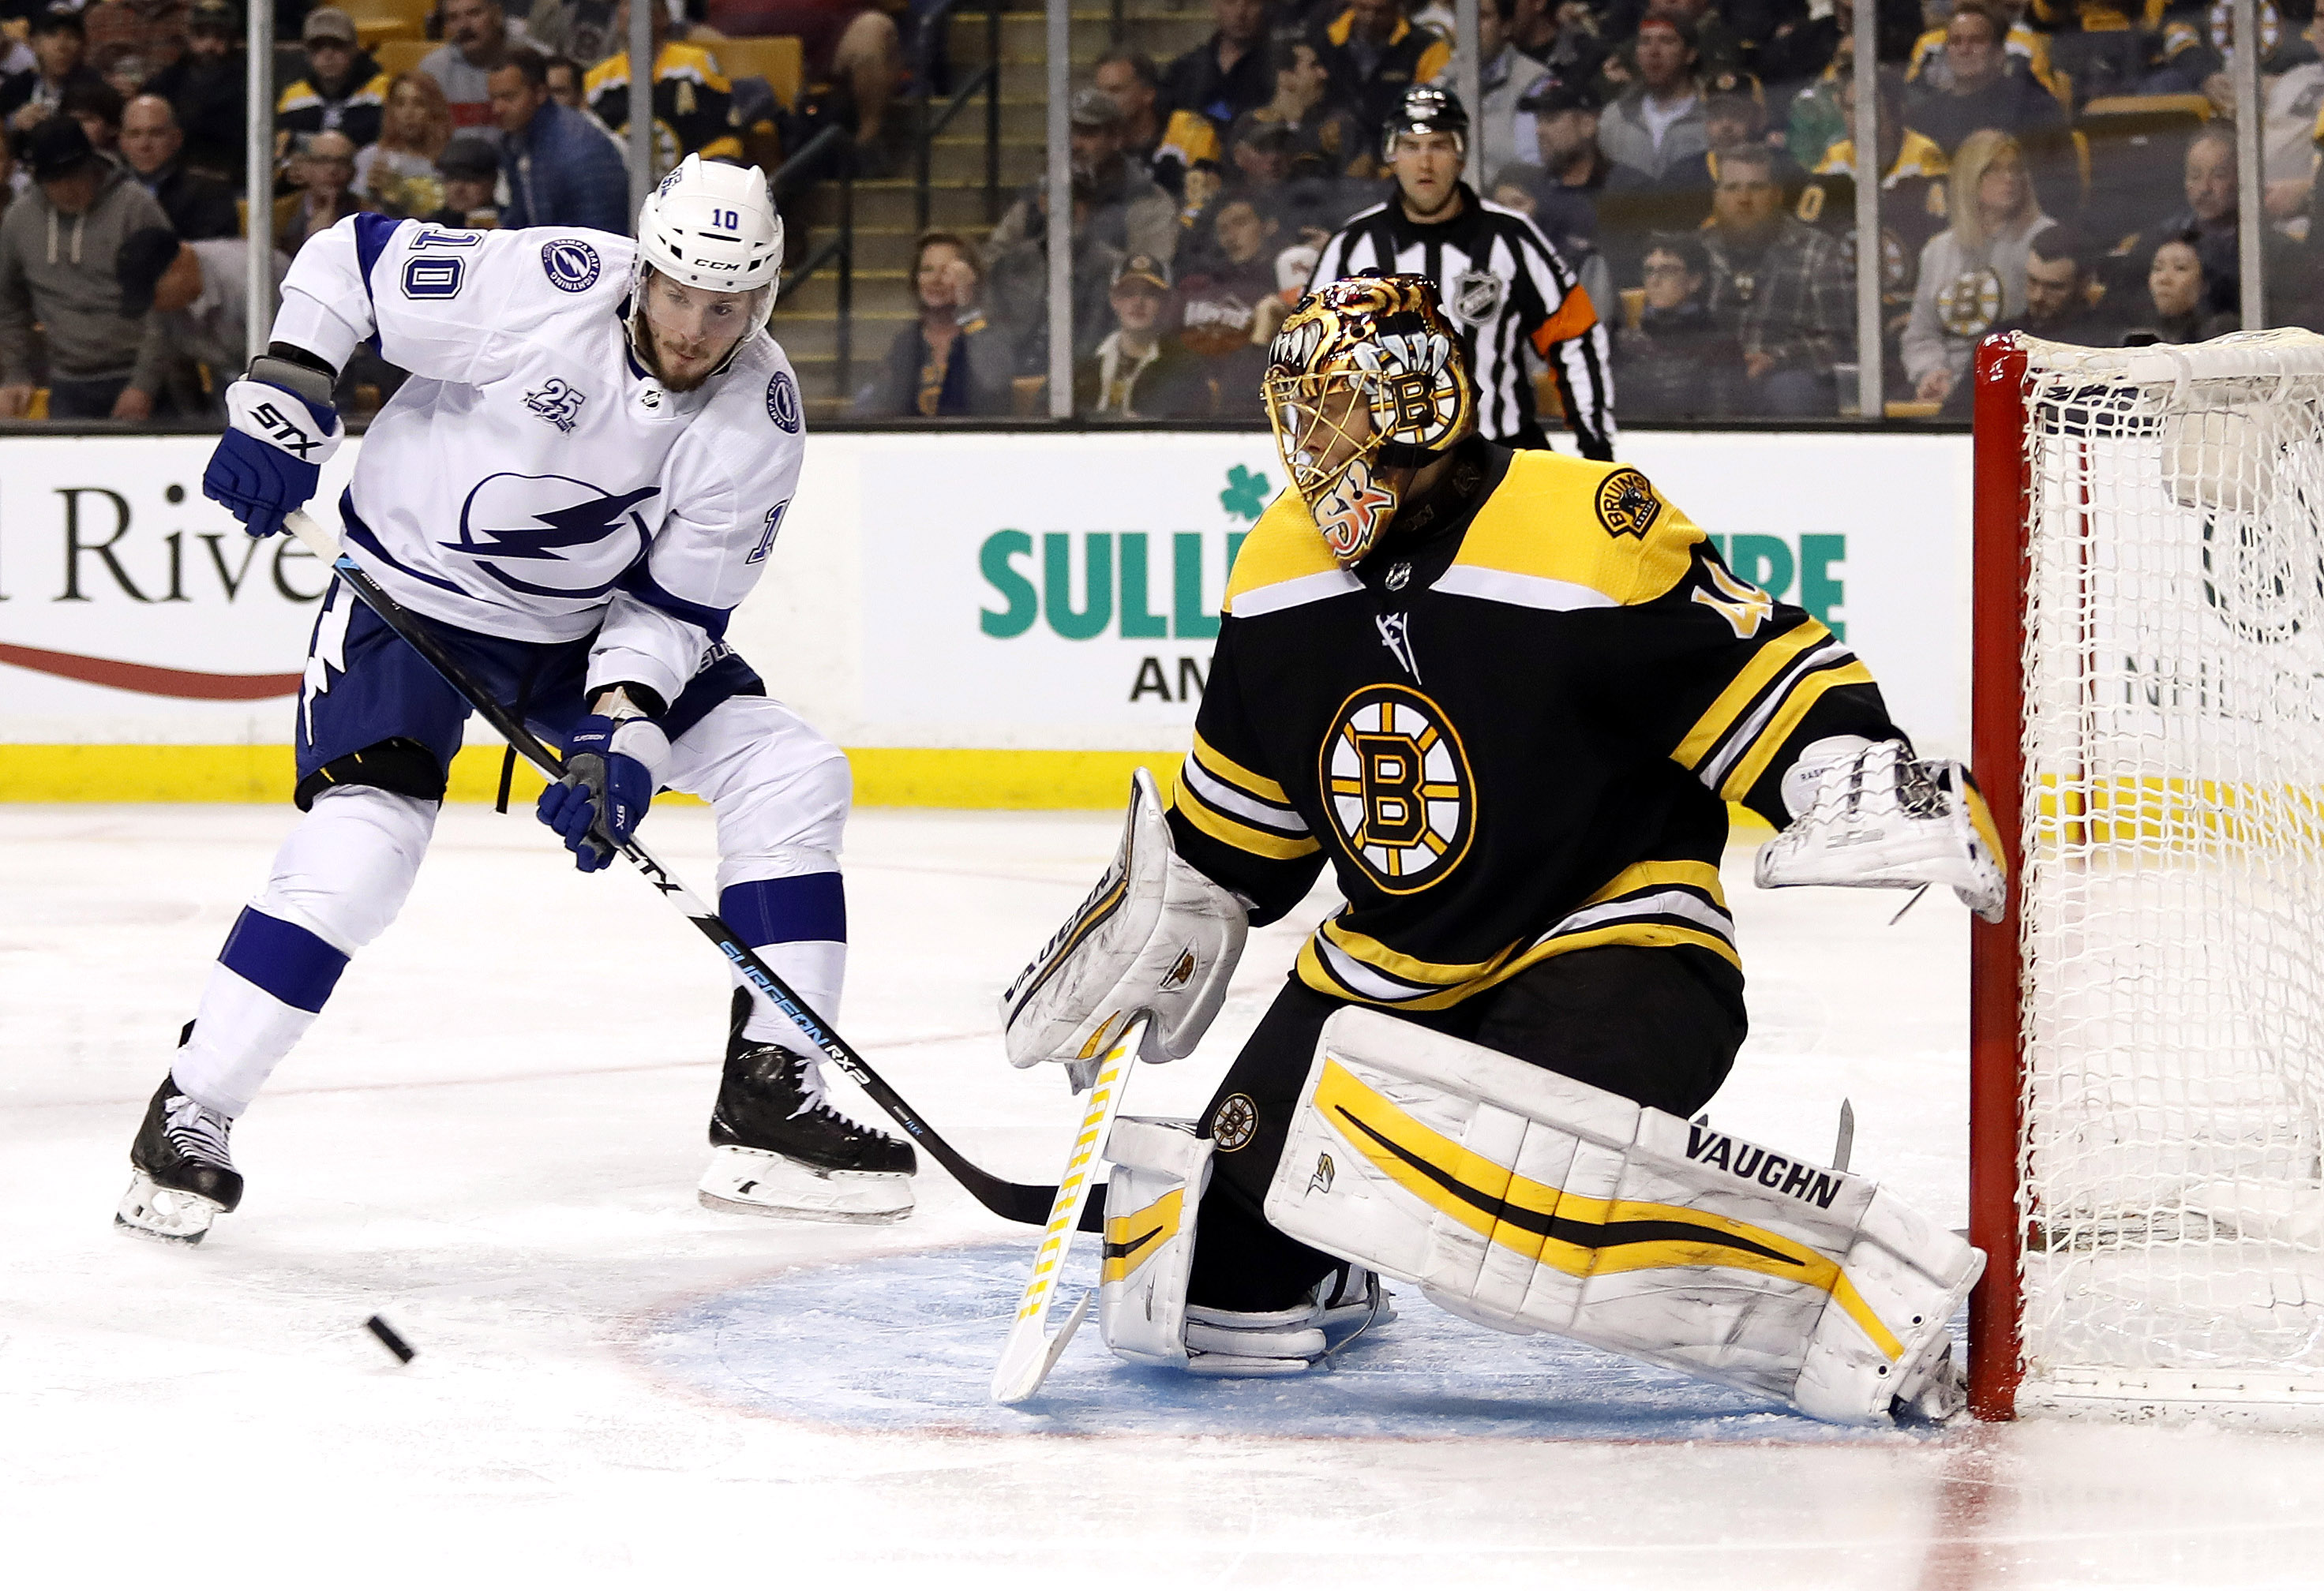 d3e3d8972a7 Bruins vs. Lightning NHL betting preview for key Tuesday clash